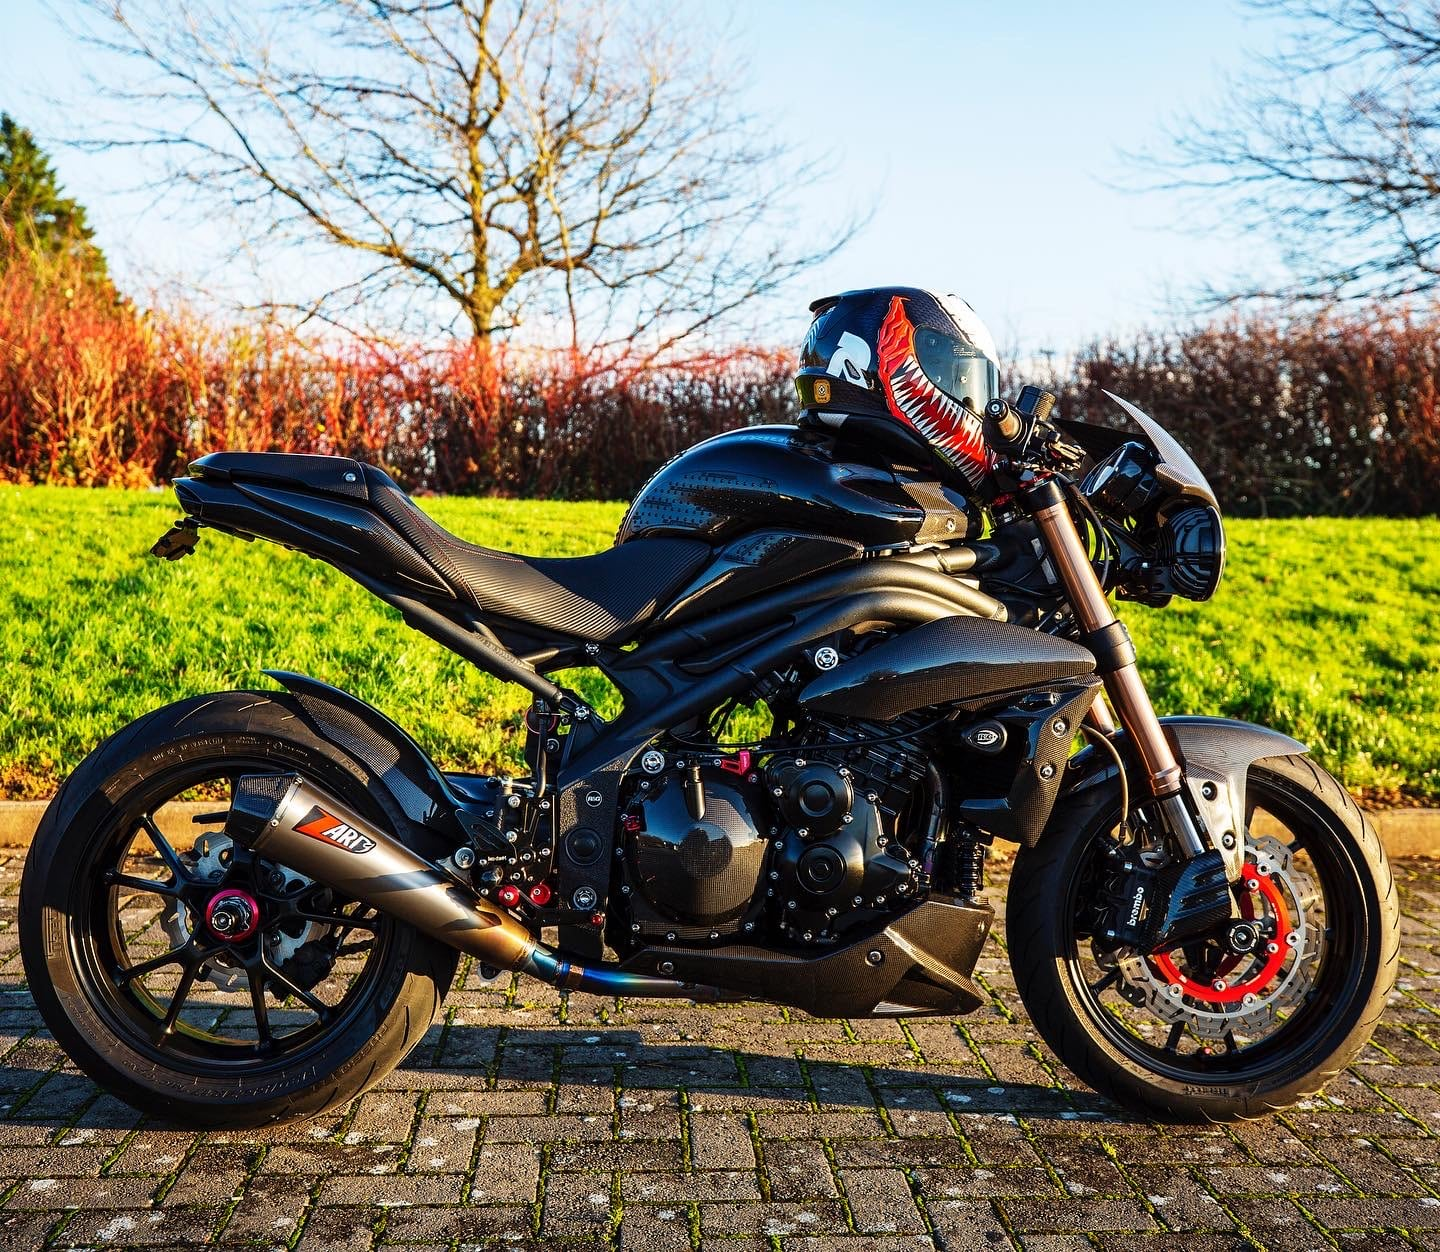 Product Review: Vee Rotors Tested on Custom Triumph Speed Triple